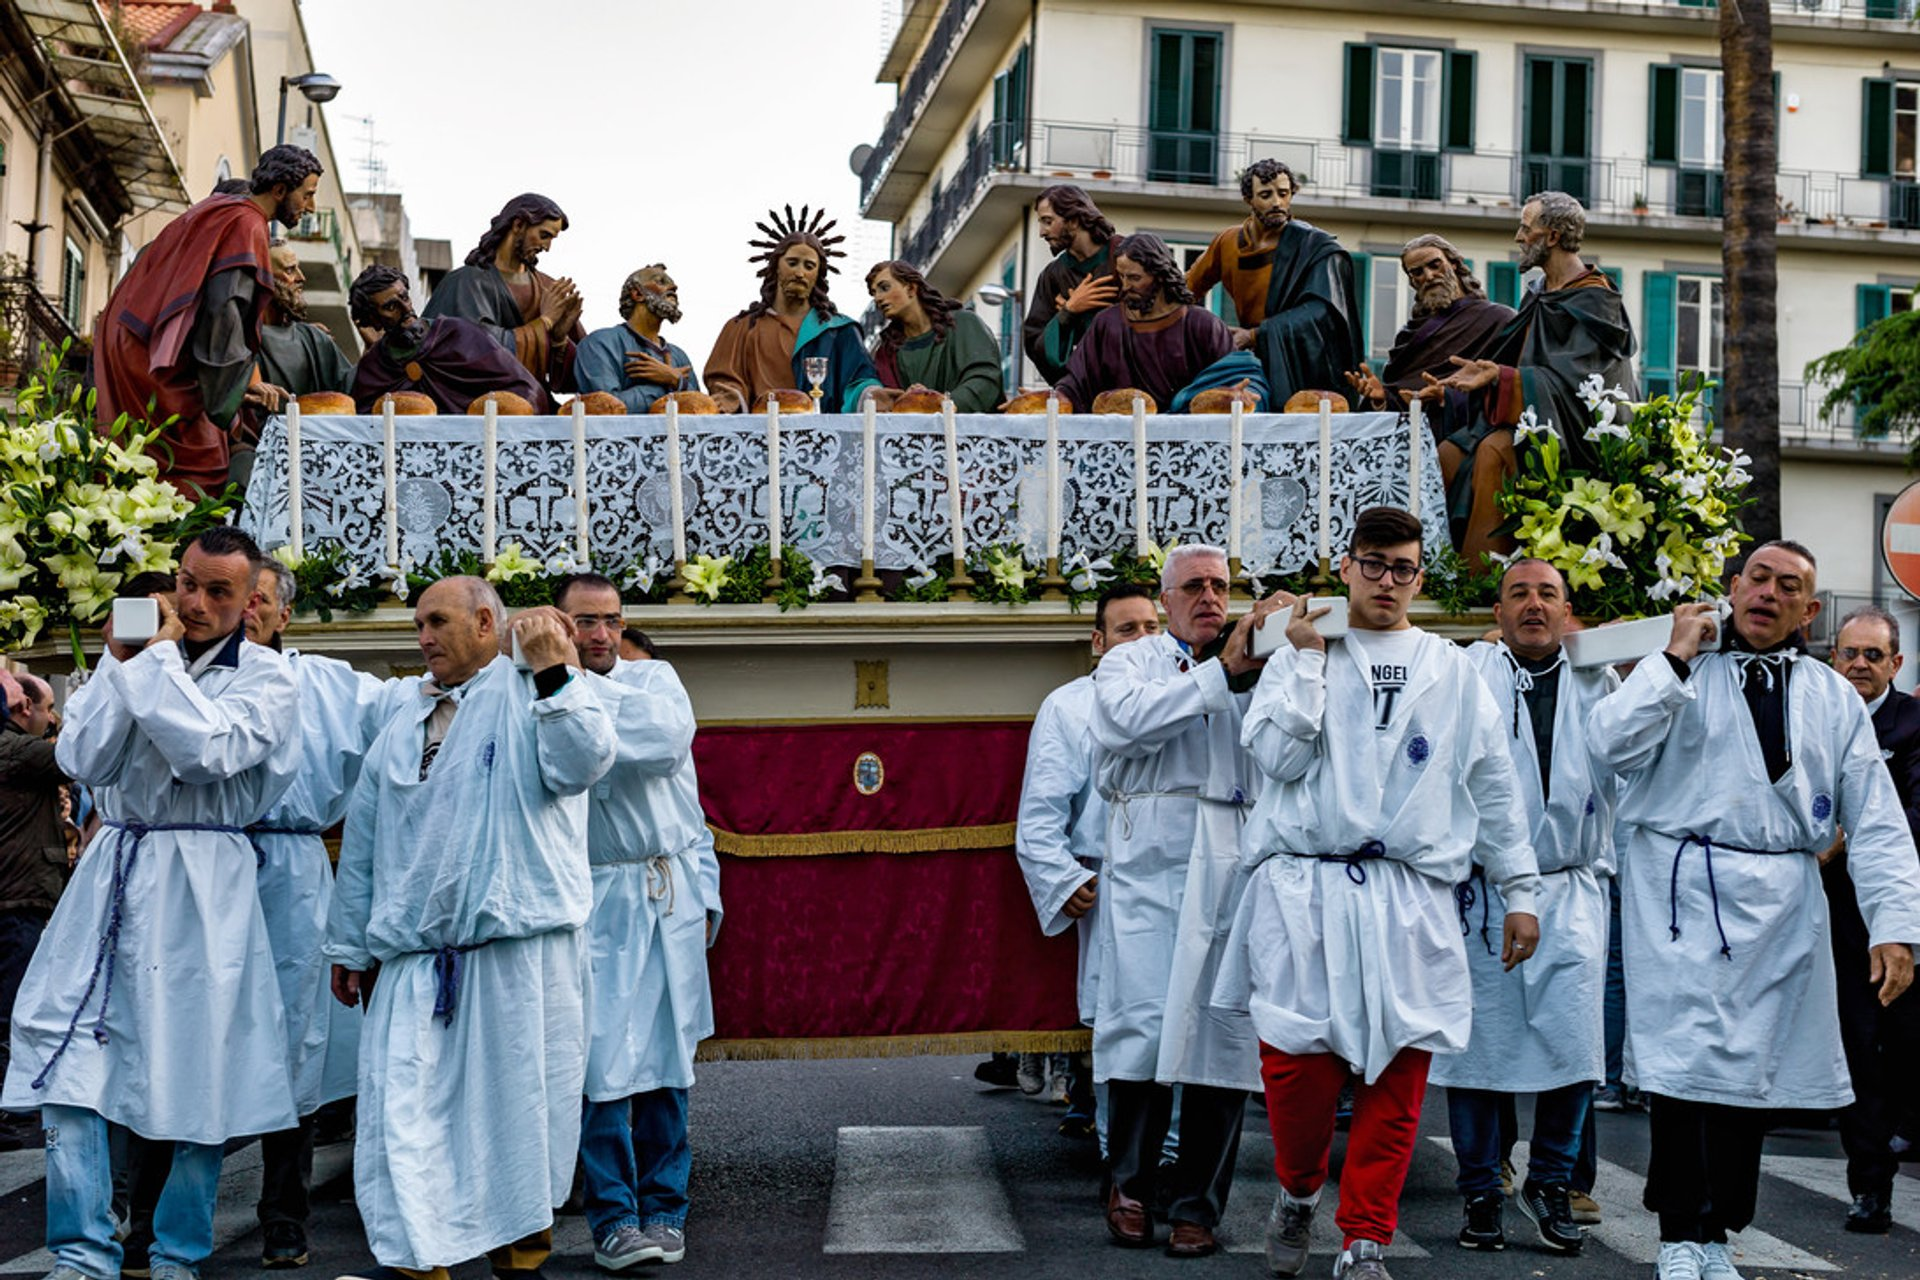 Holy Week & Easter in Sicily 2019 - Best Time